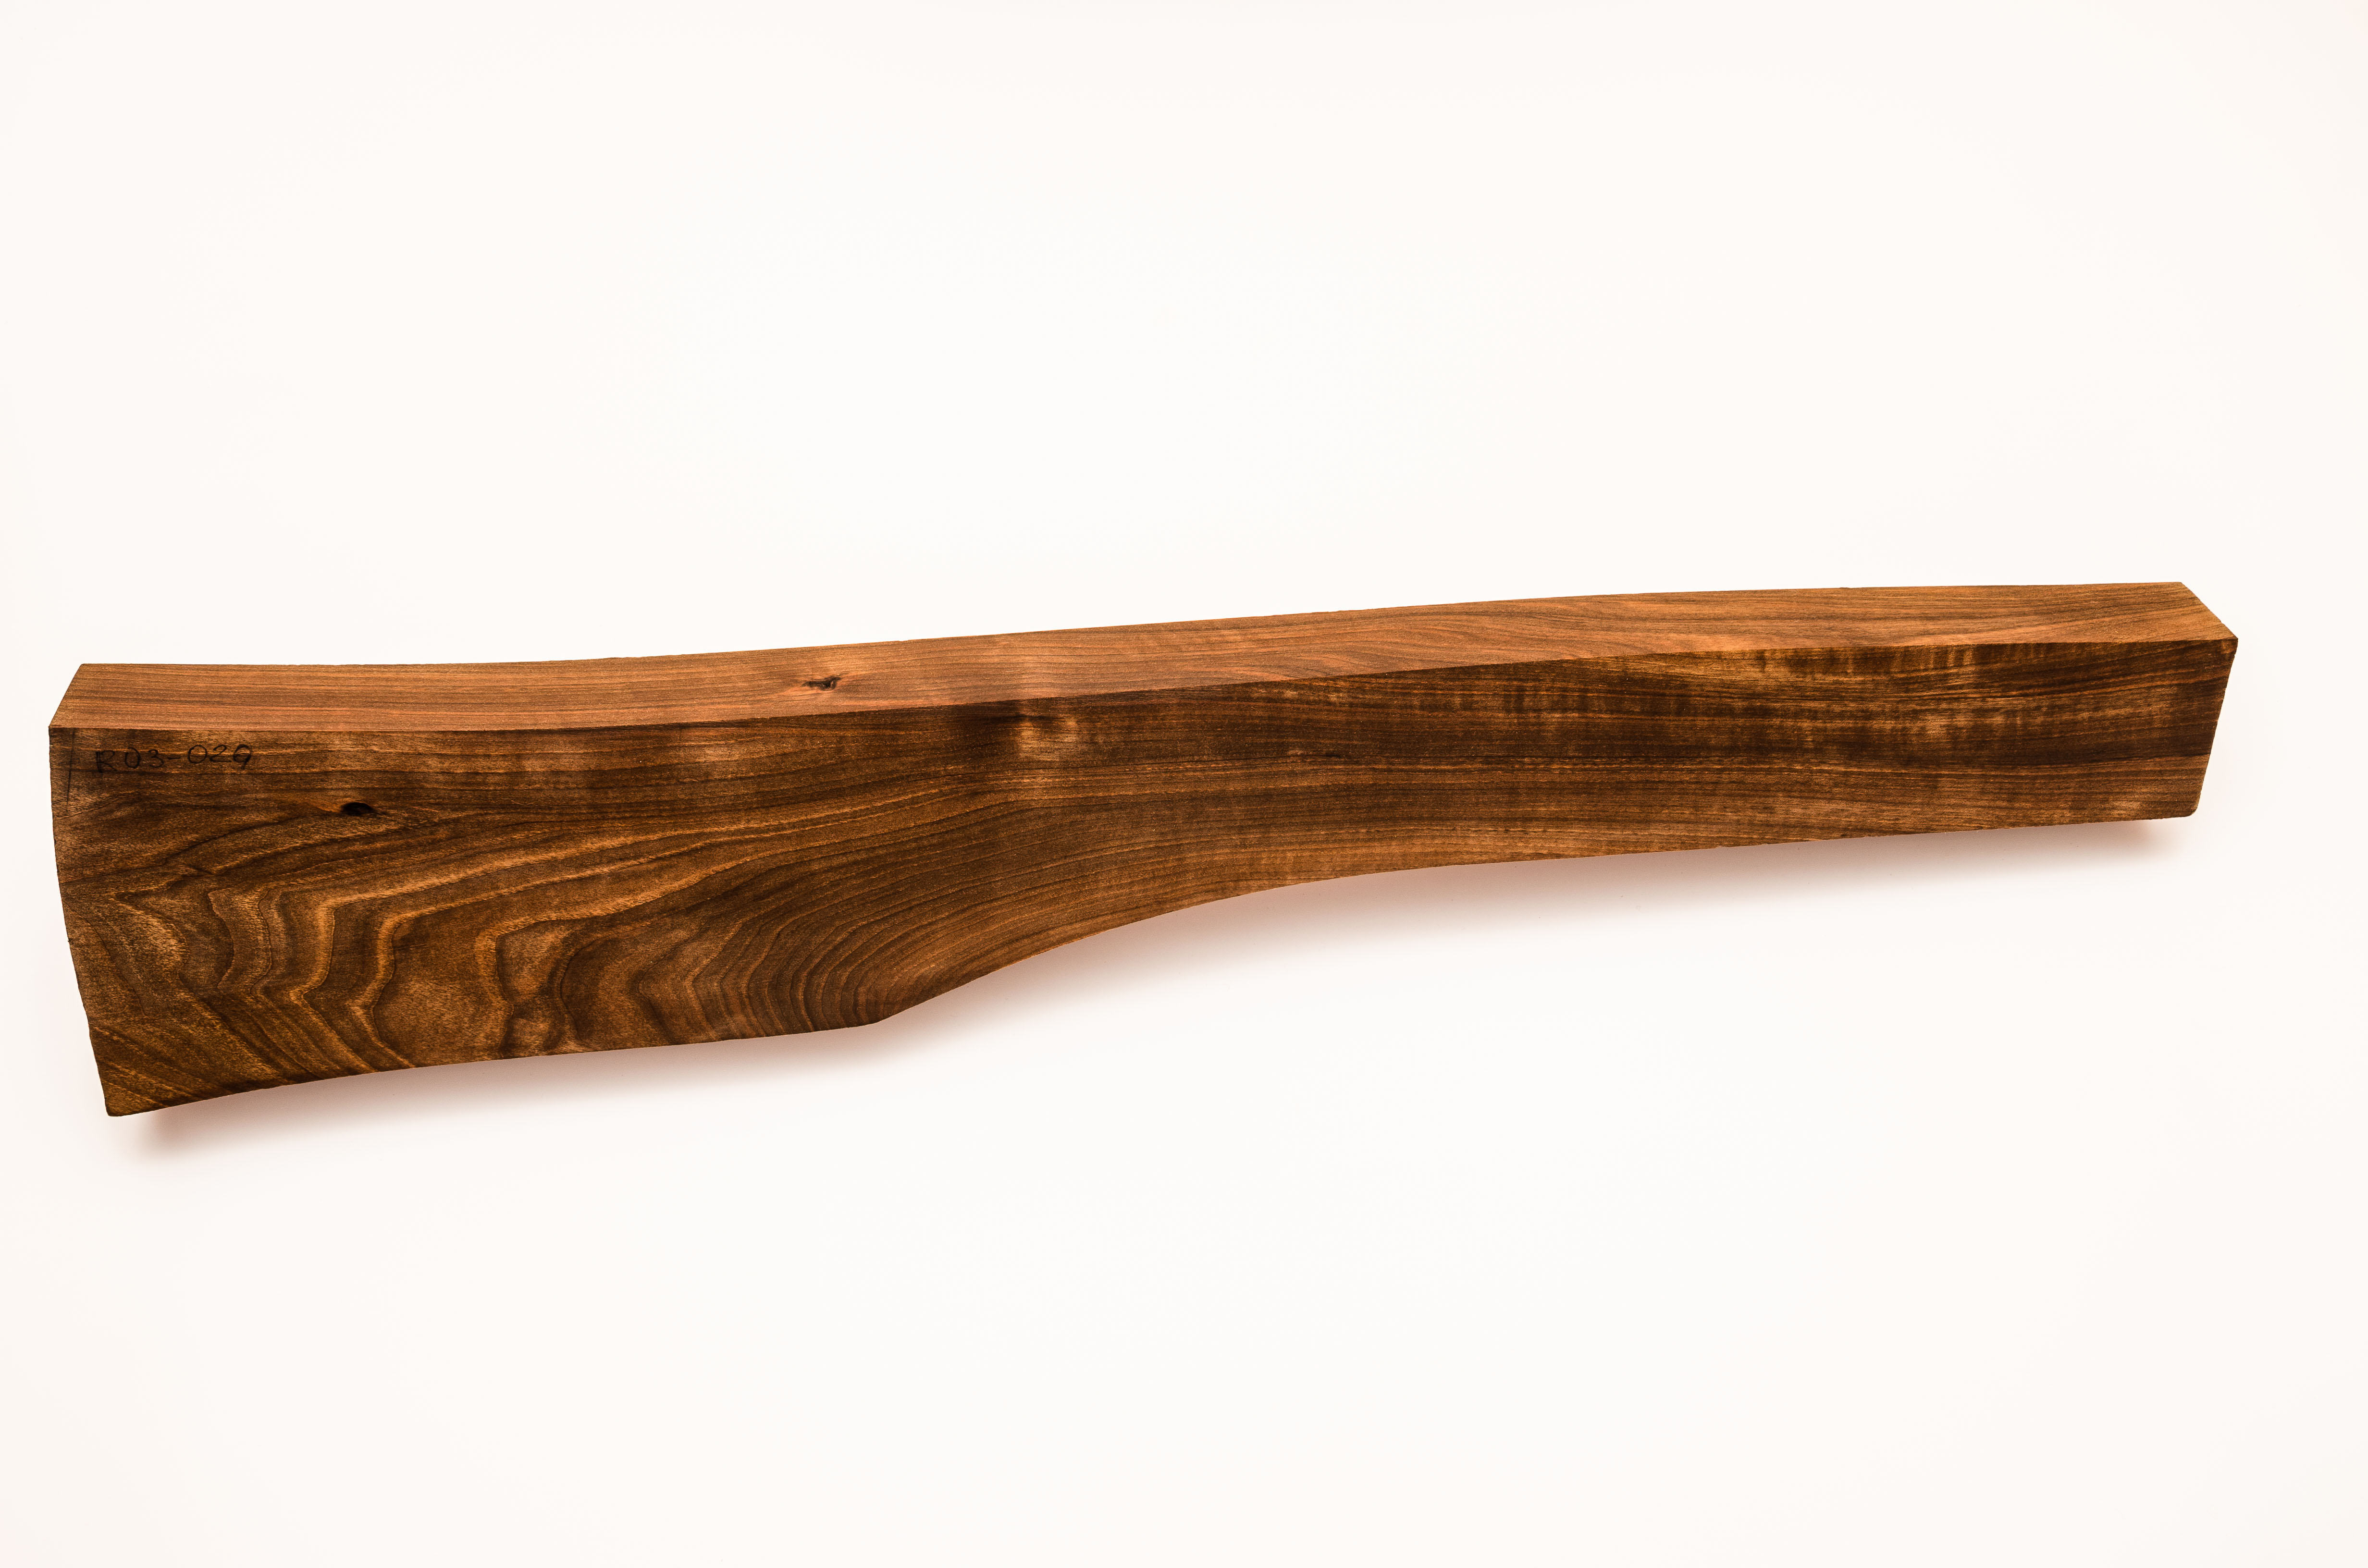 walnut_stock_blanks_for_guns_and_rifles-1073